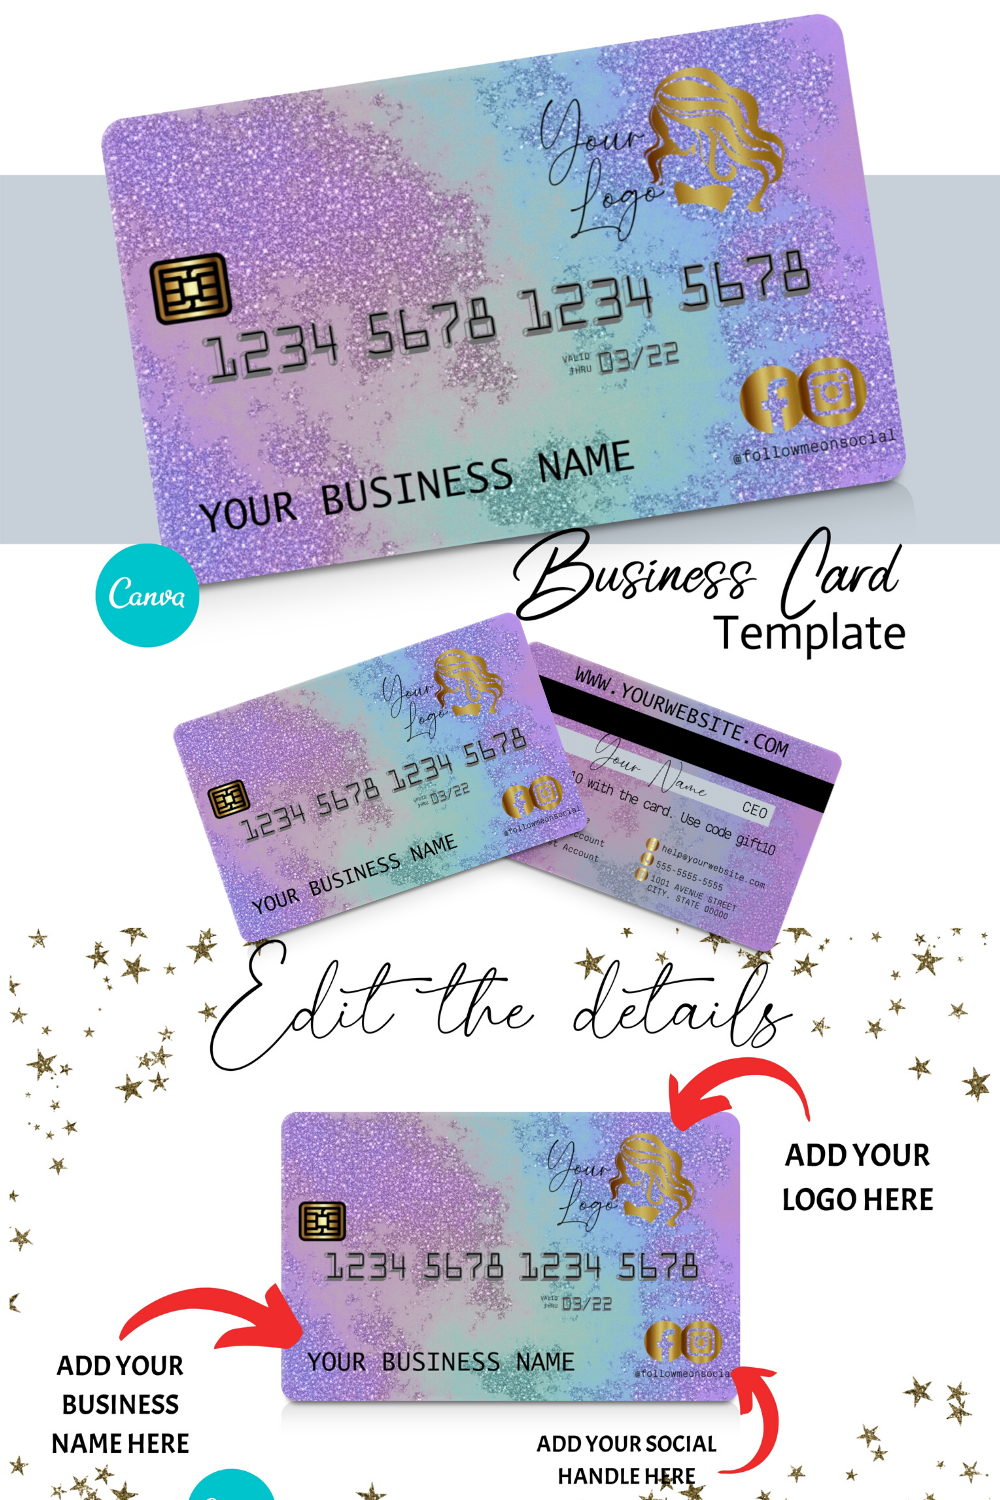 Credit Card Business Cards Customized For Your Brand Credit Card Style Hair Extension Brand Boutique Makeup Stylist Lash Glam Itstheak Credit Card Design Hair Business Cards Beauty Business Cards